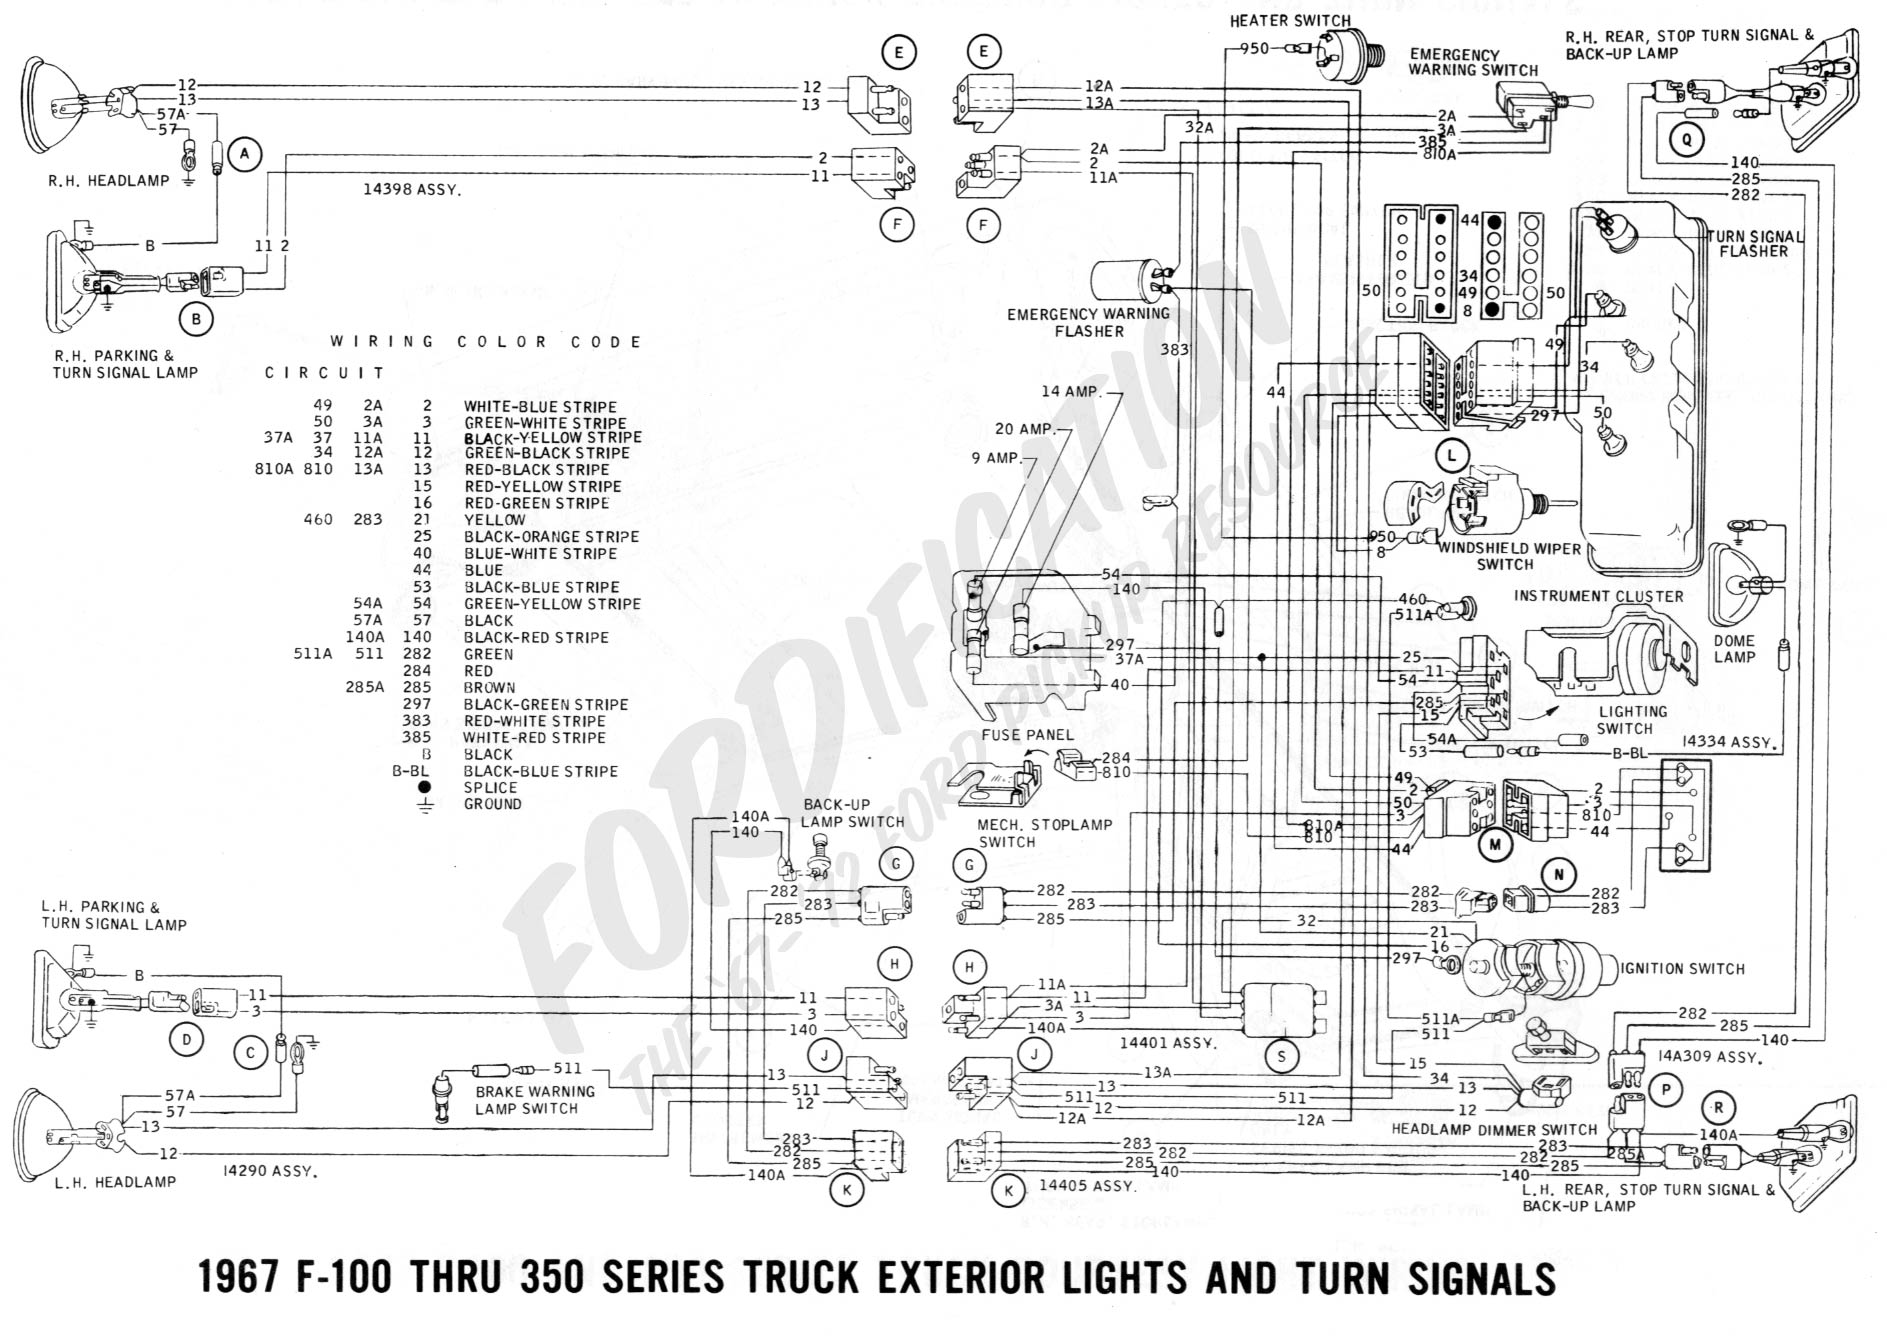 1978 Explorer Wiring Diagram Libraries Ford F700 Simple Schema1978 Truck Neutral Switch Diagrams